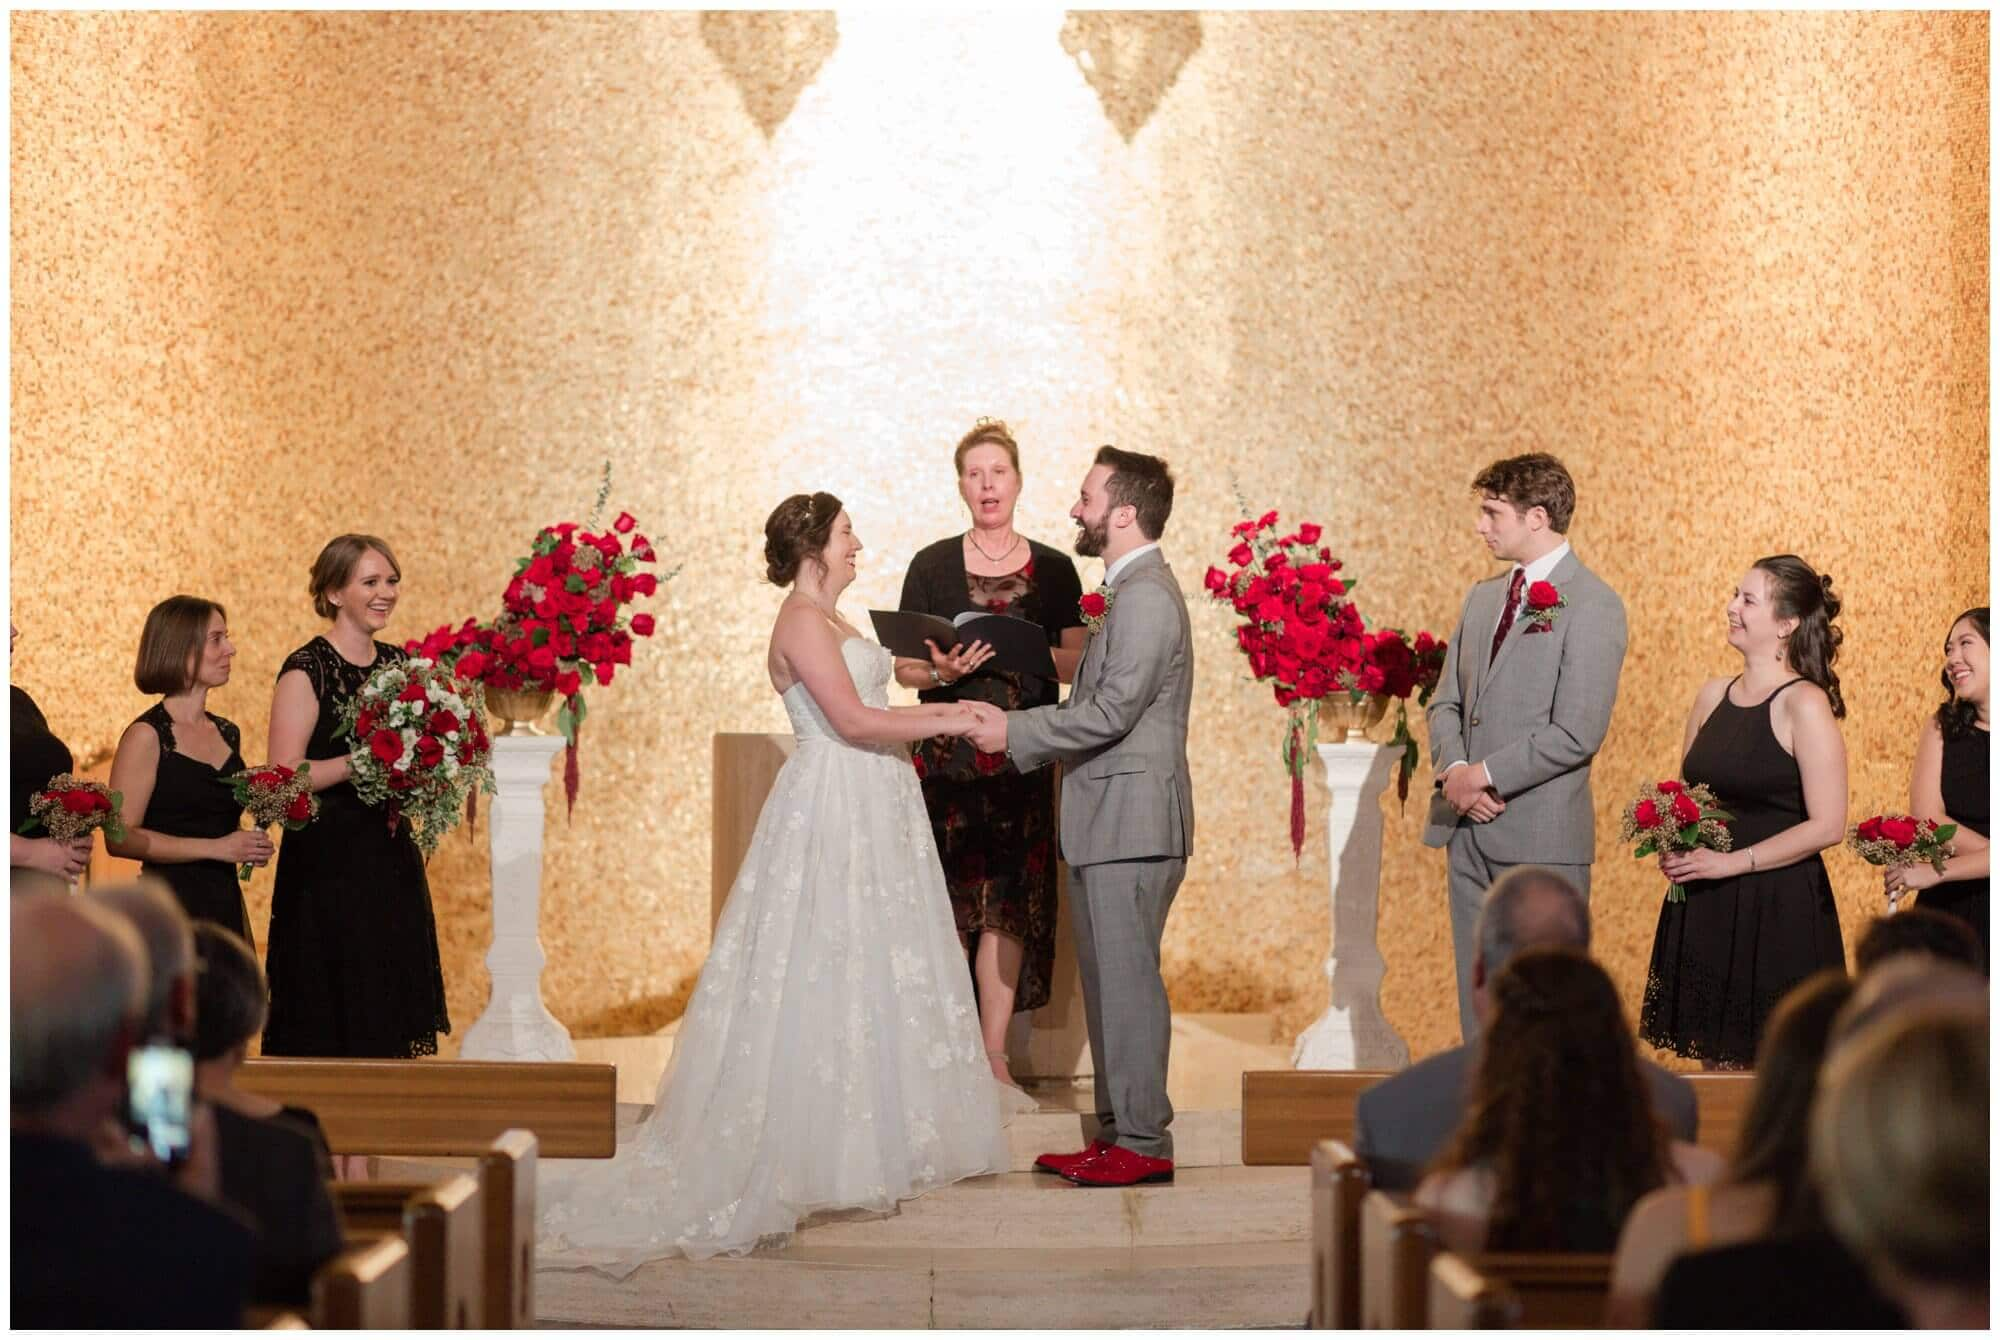 wedding ceremony at Rice University in Houston Texas by Swish and Click Photography